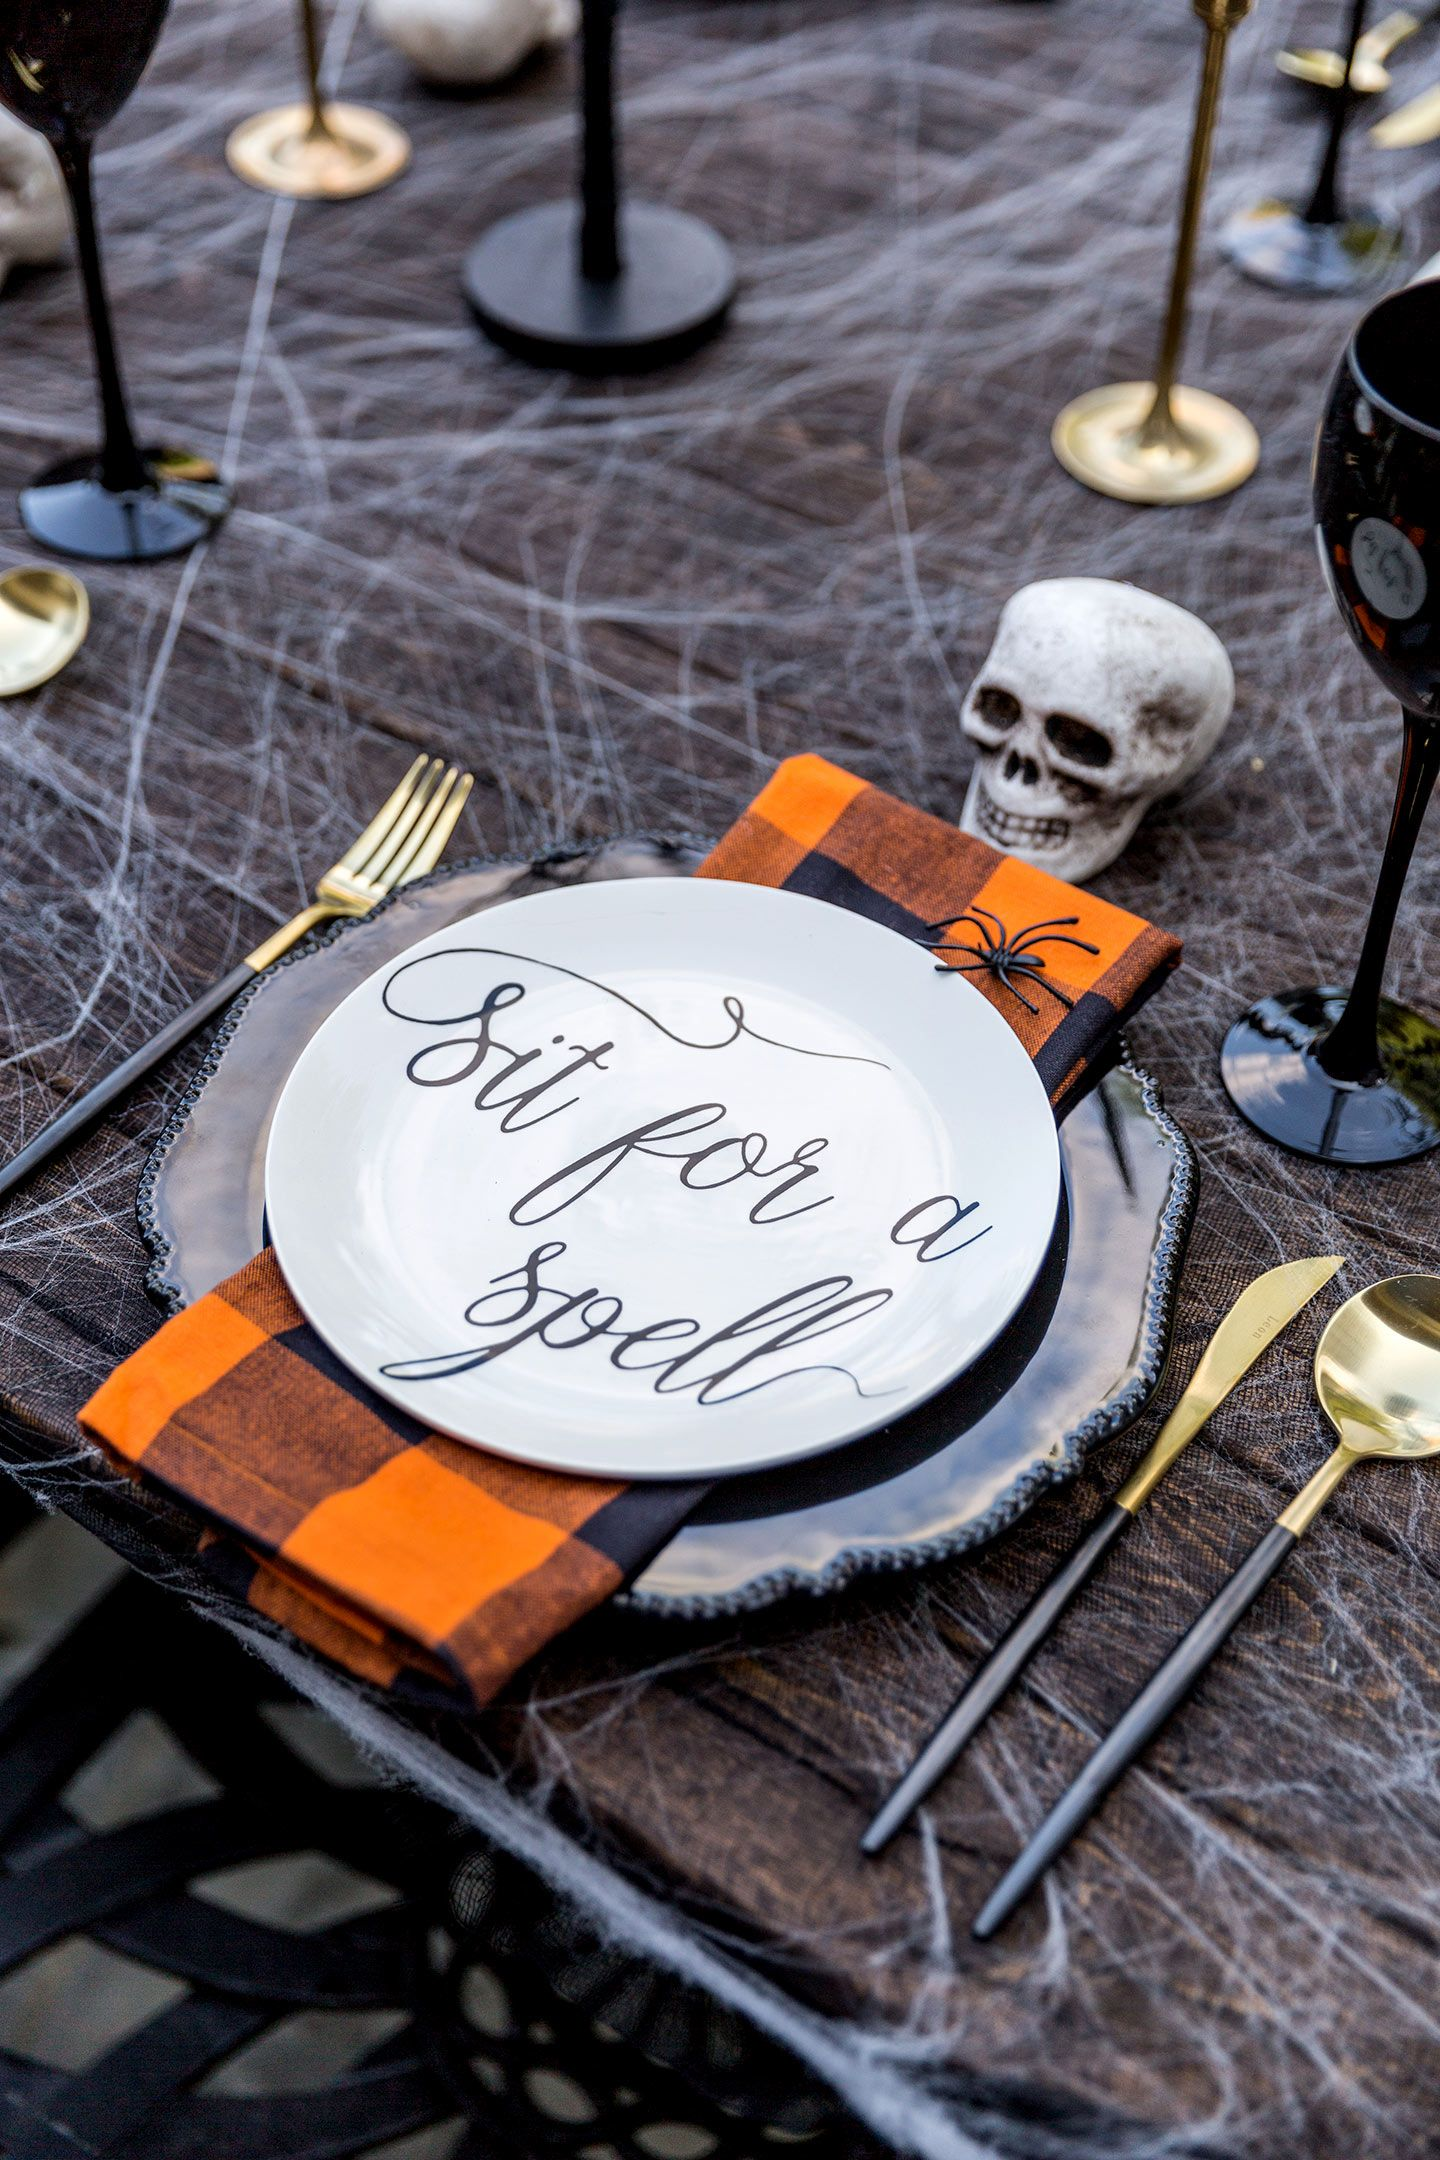 Adult Halloween Party Decorations  Halloween Menu Ideas Halloween - Halloween Party Decoration Ideas Adults